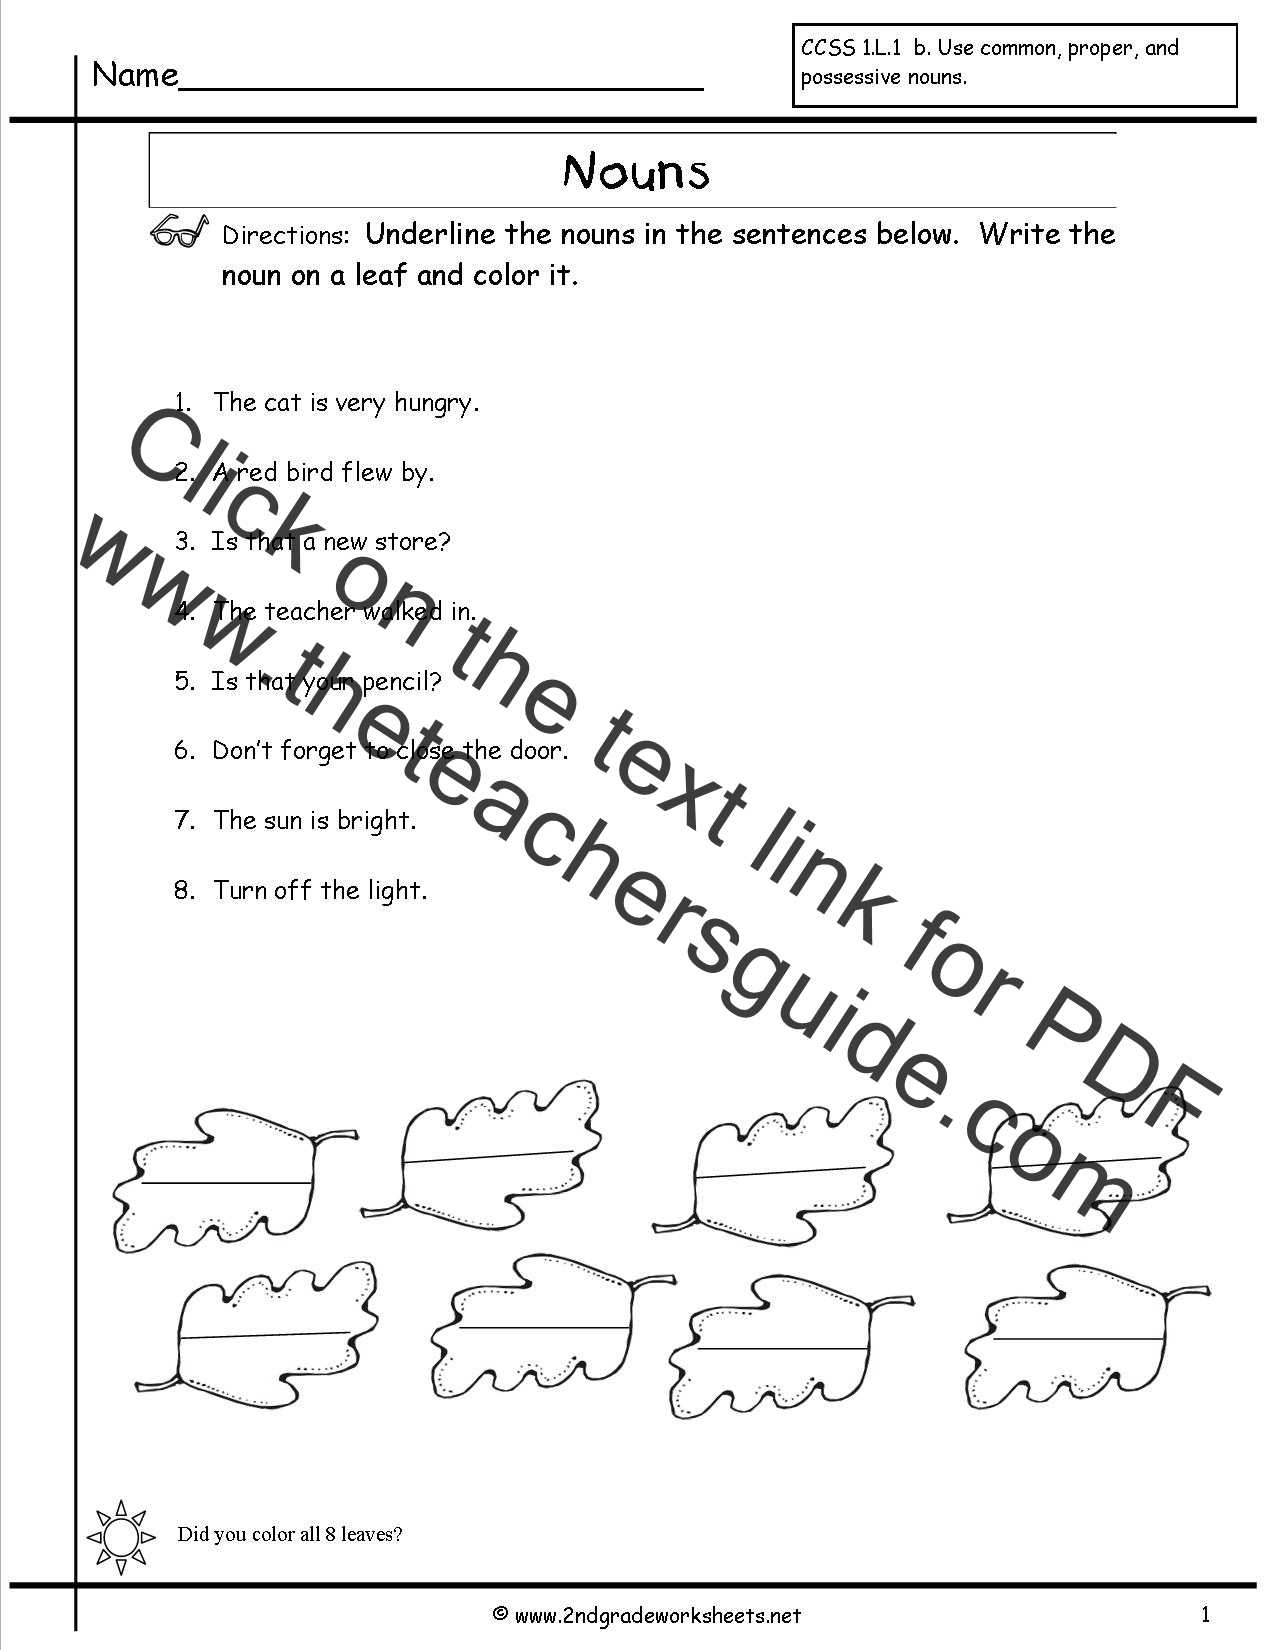 Worksheets Worksheets On Nouns worksheets and printouts nouns worksheet